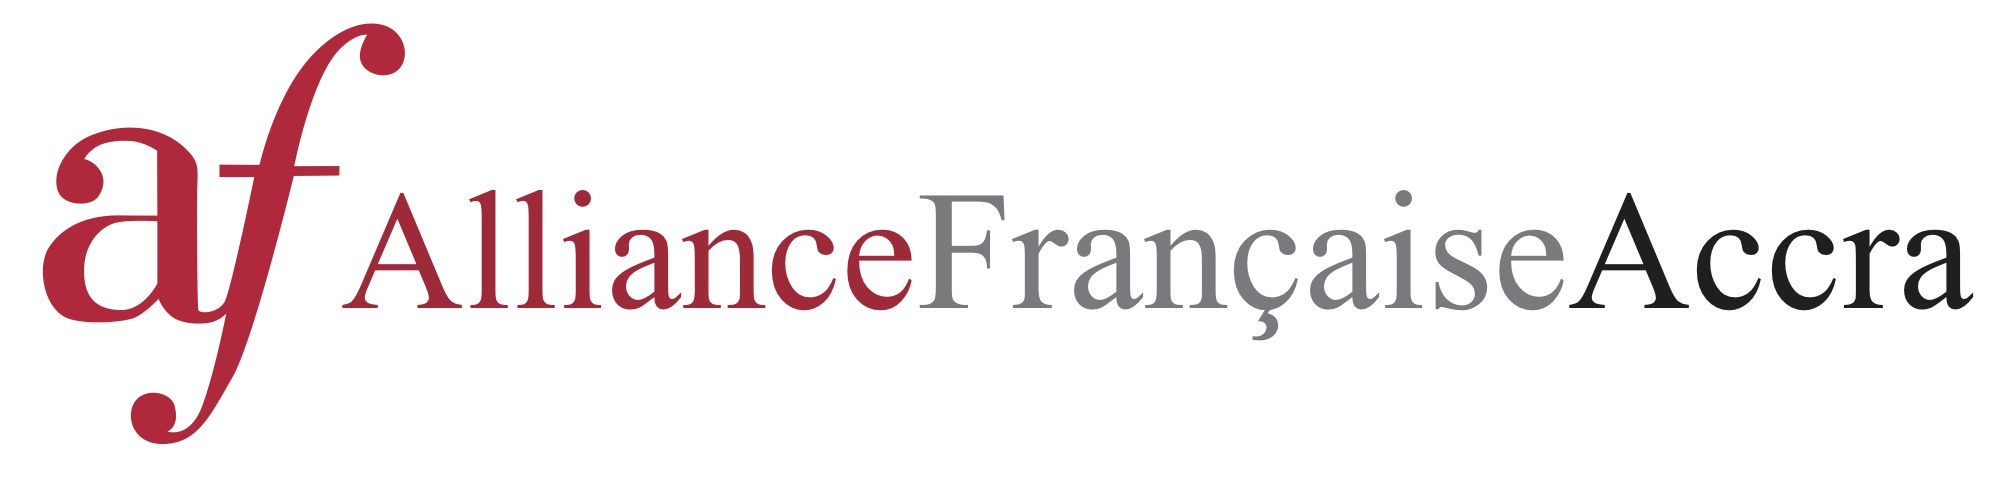 Alliance Fancaise Accra logo.jpg